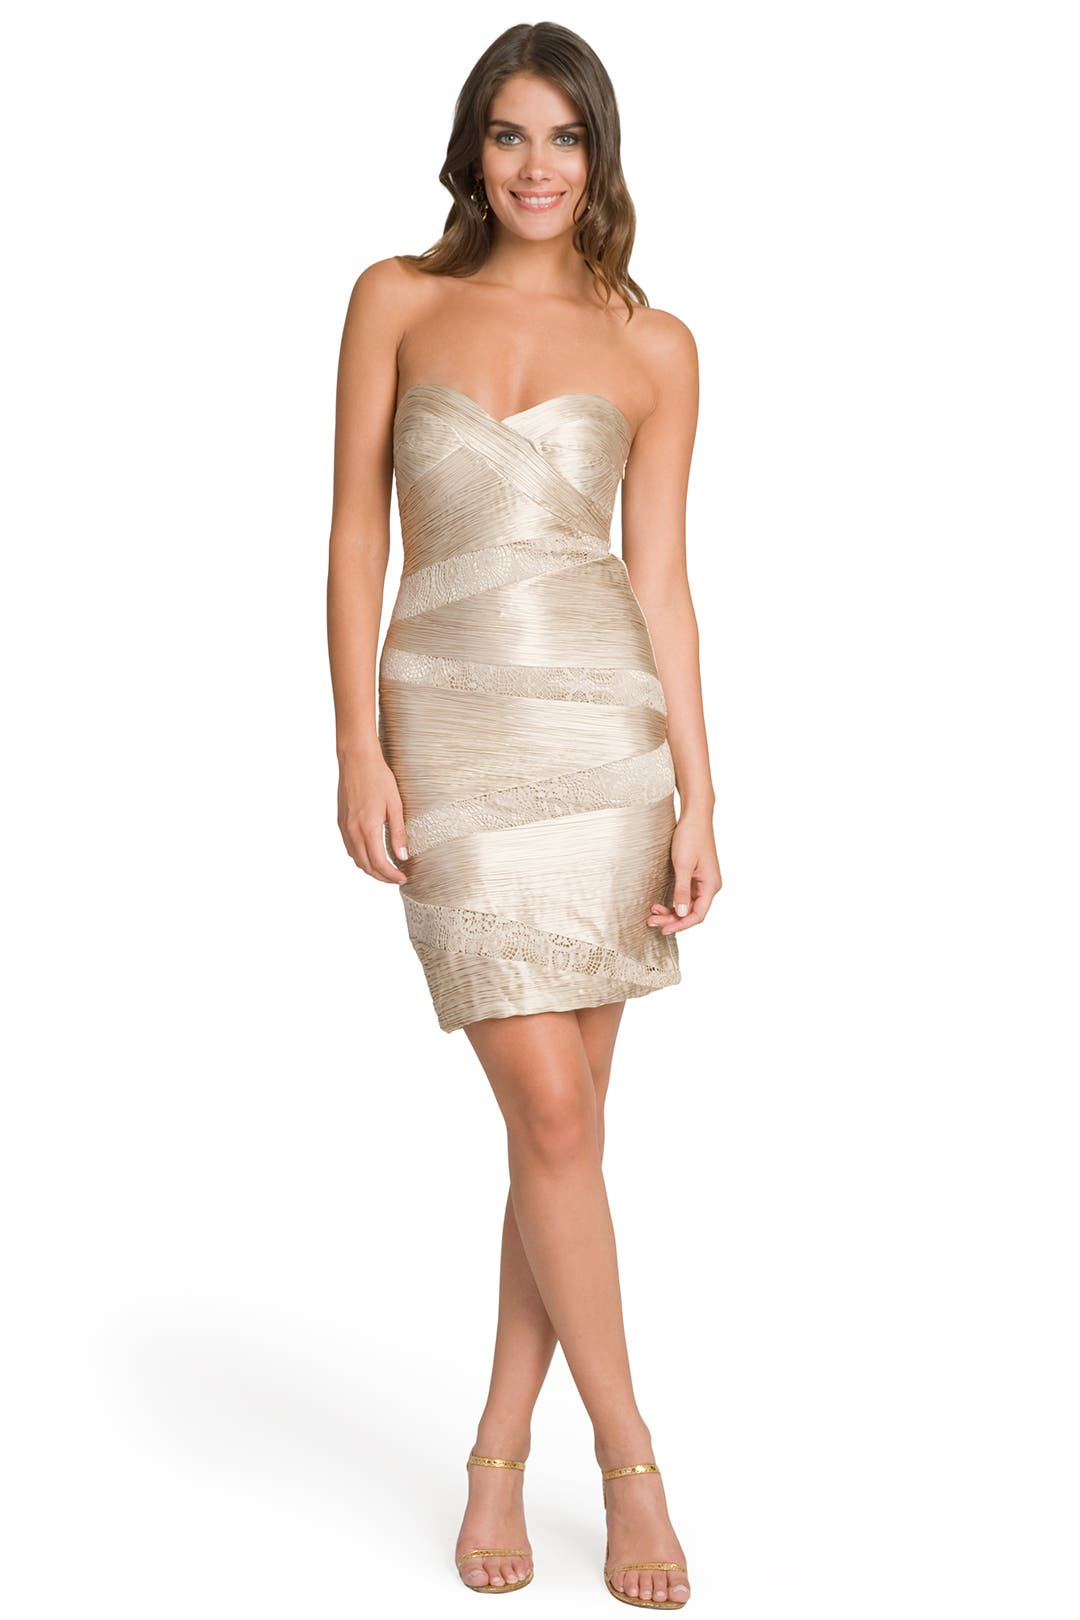 A Formal Affair Dress by Carlos Miele